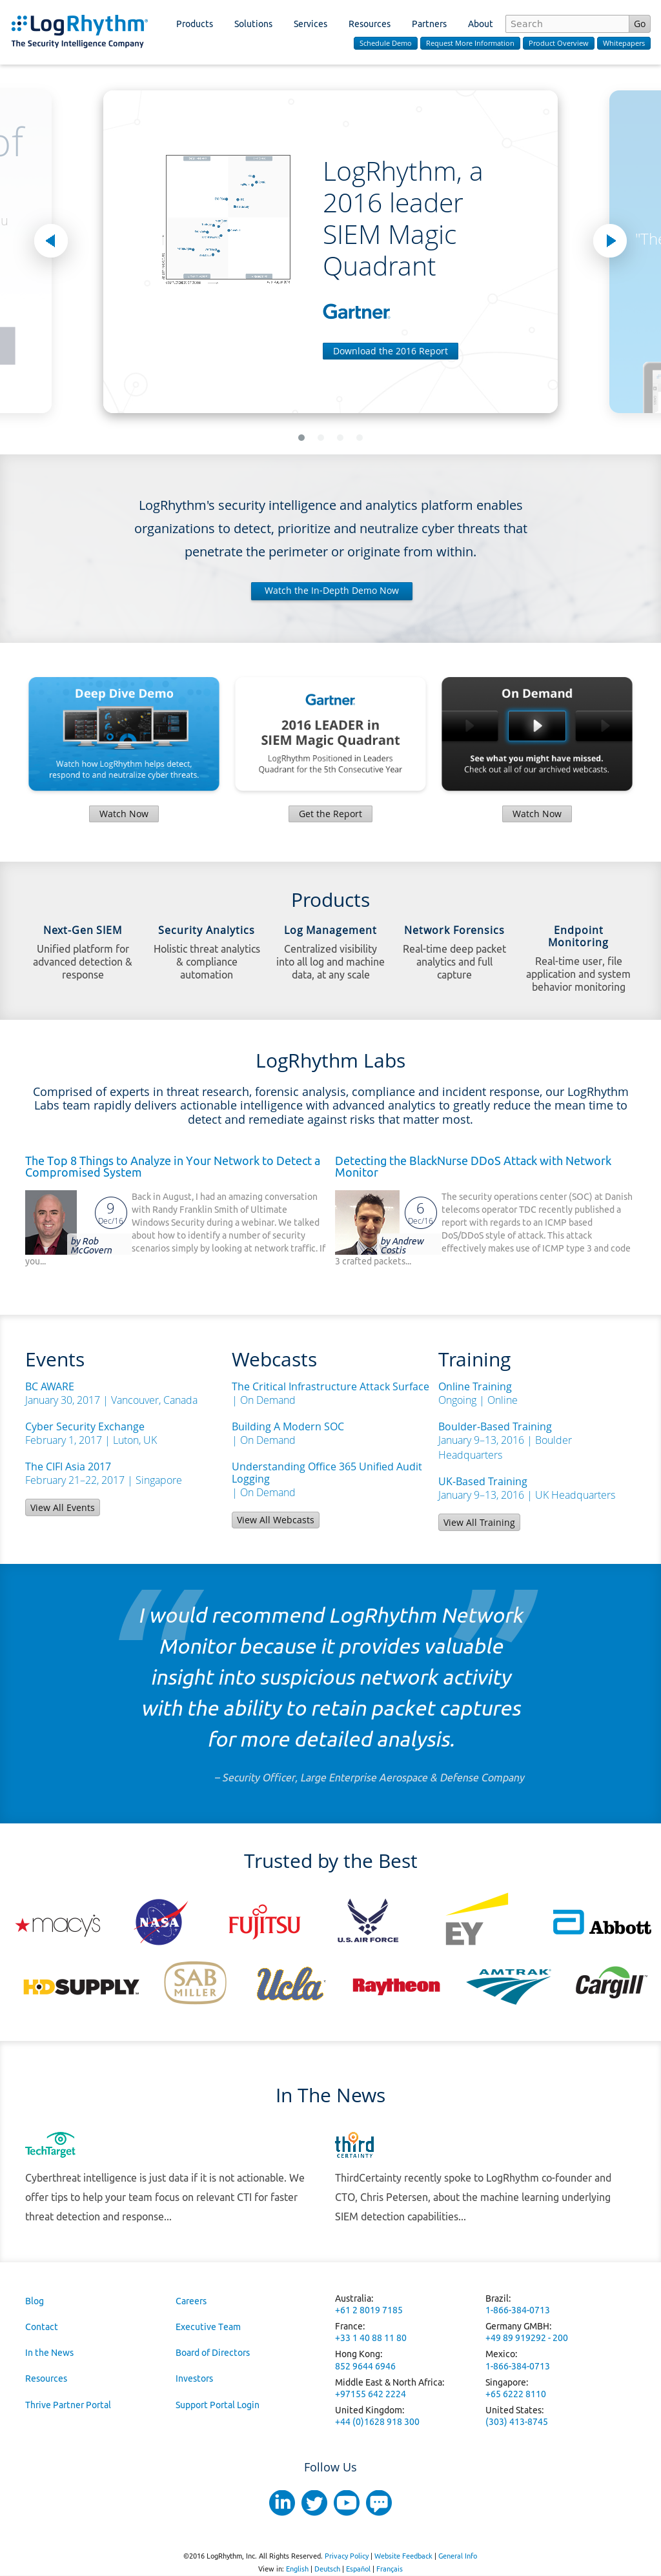 LogRhythm Competitors, Revenue and Employees - Owler Company